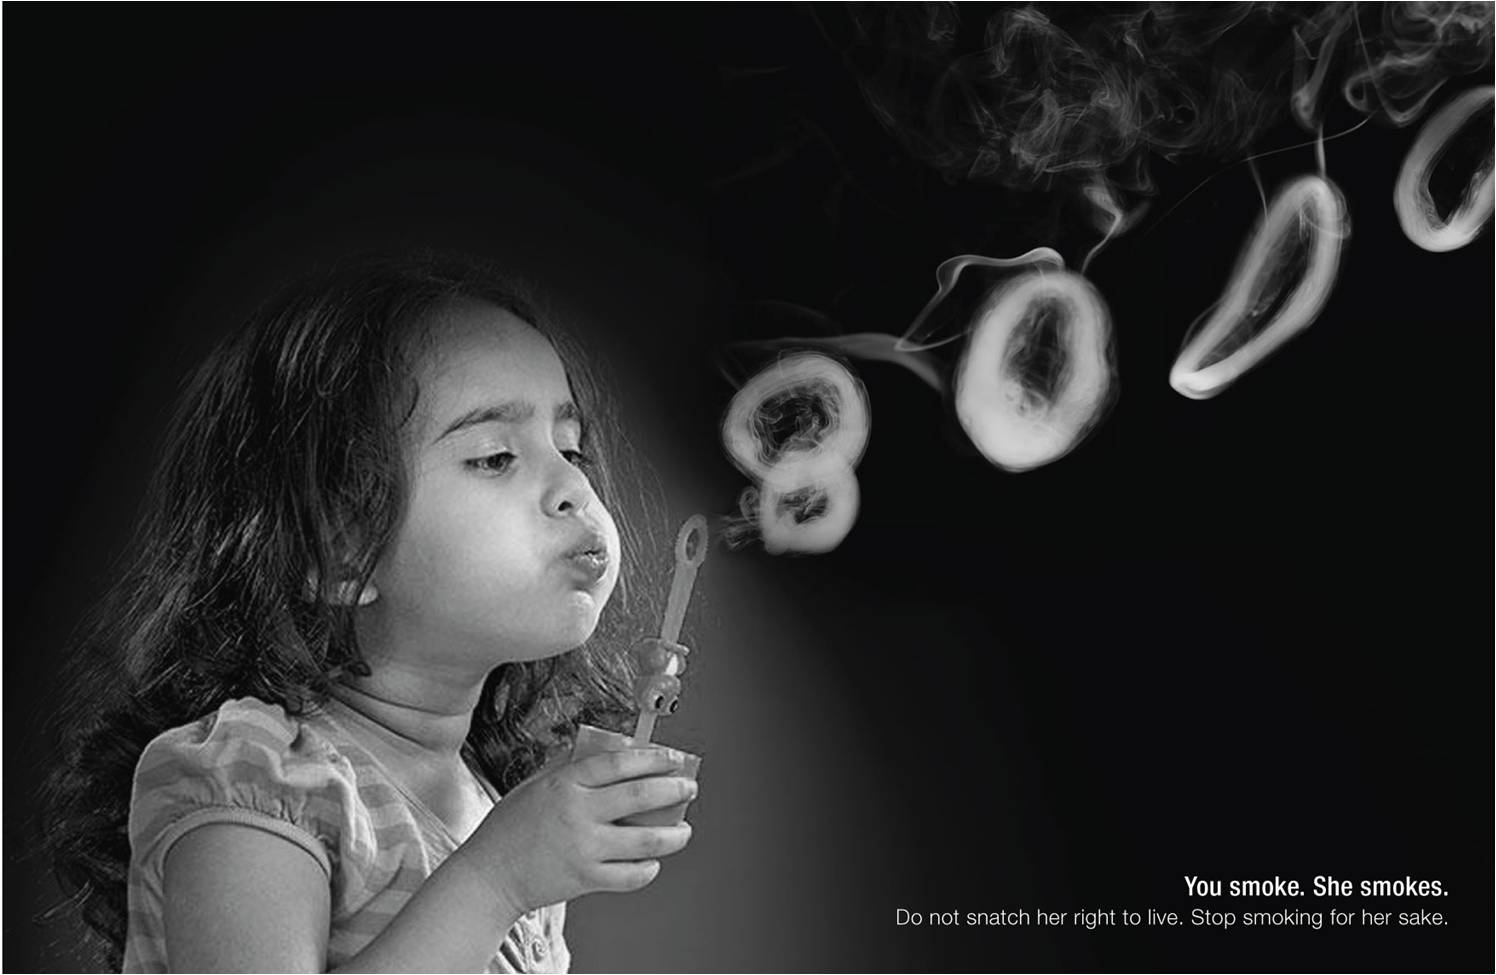 anti smoking ad (cbs news) smoking kills 443,000 americans each year, more than the population of virginia beach starting monday, folks in virginia beach and across the country will begin seeing graphic anti .